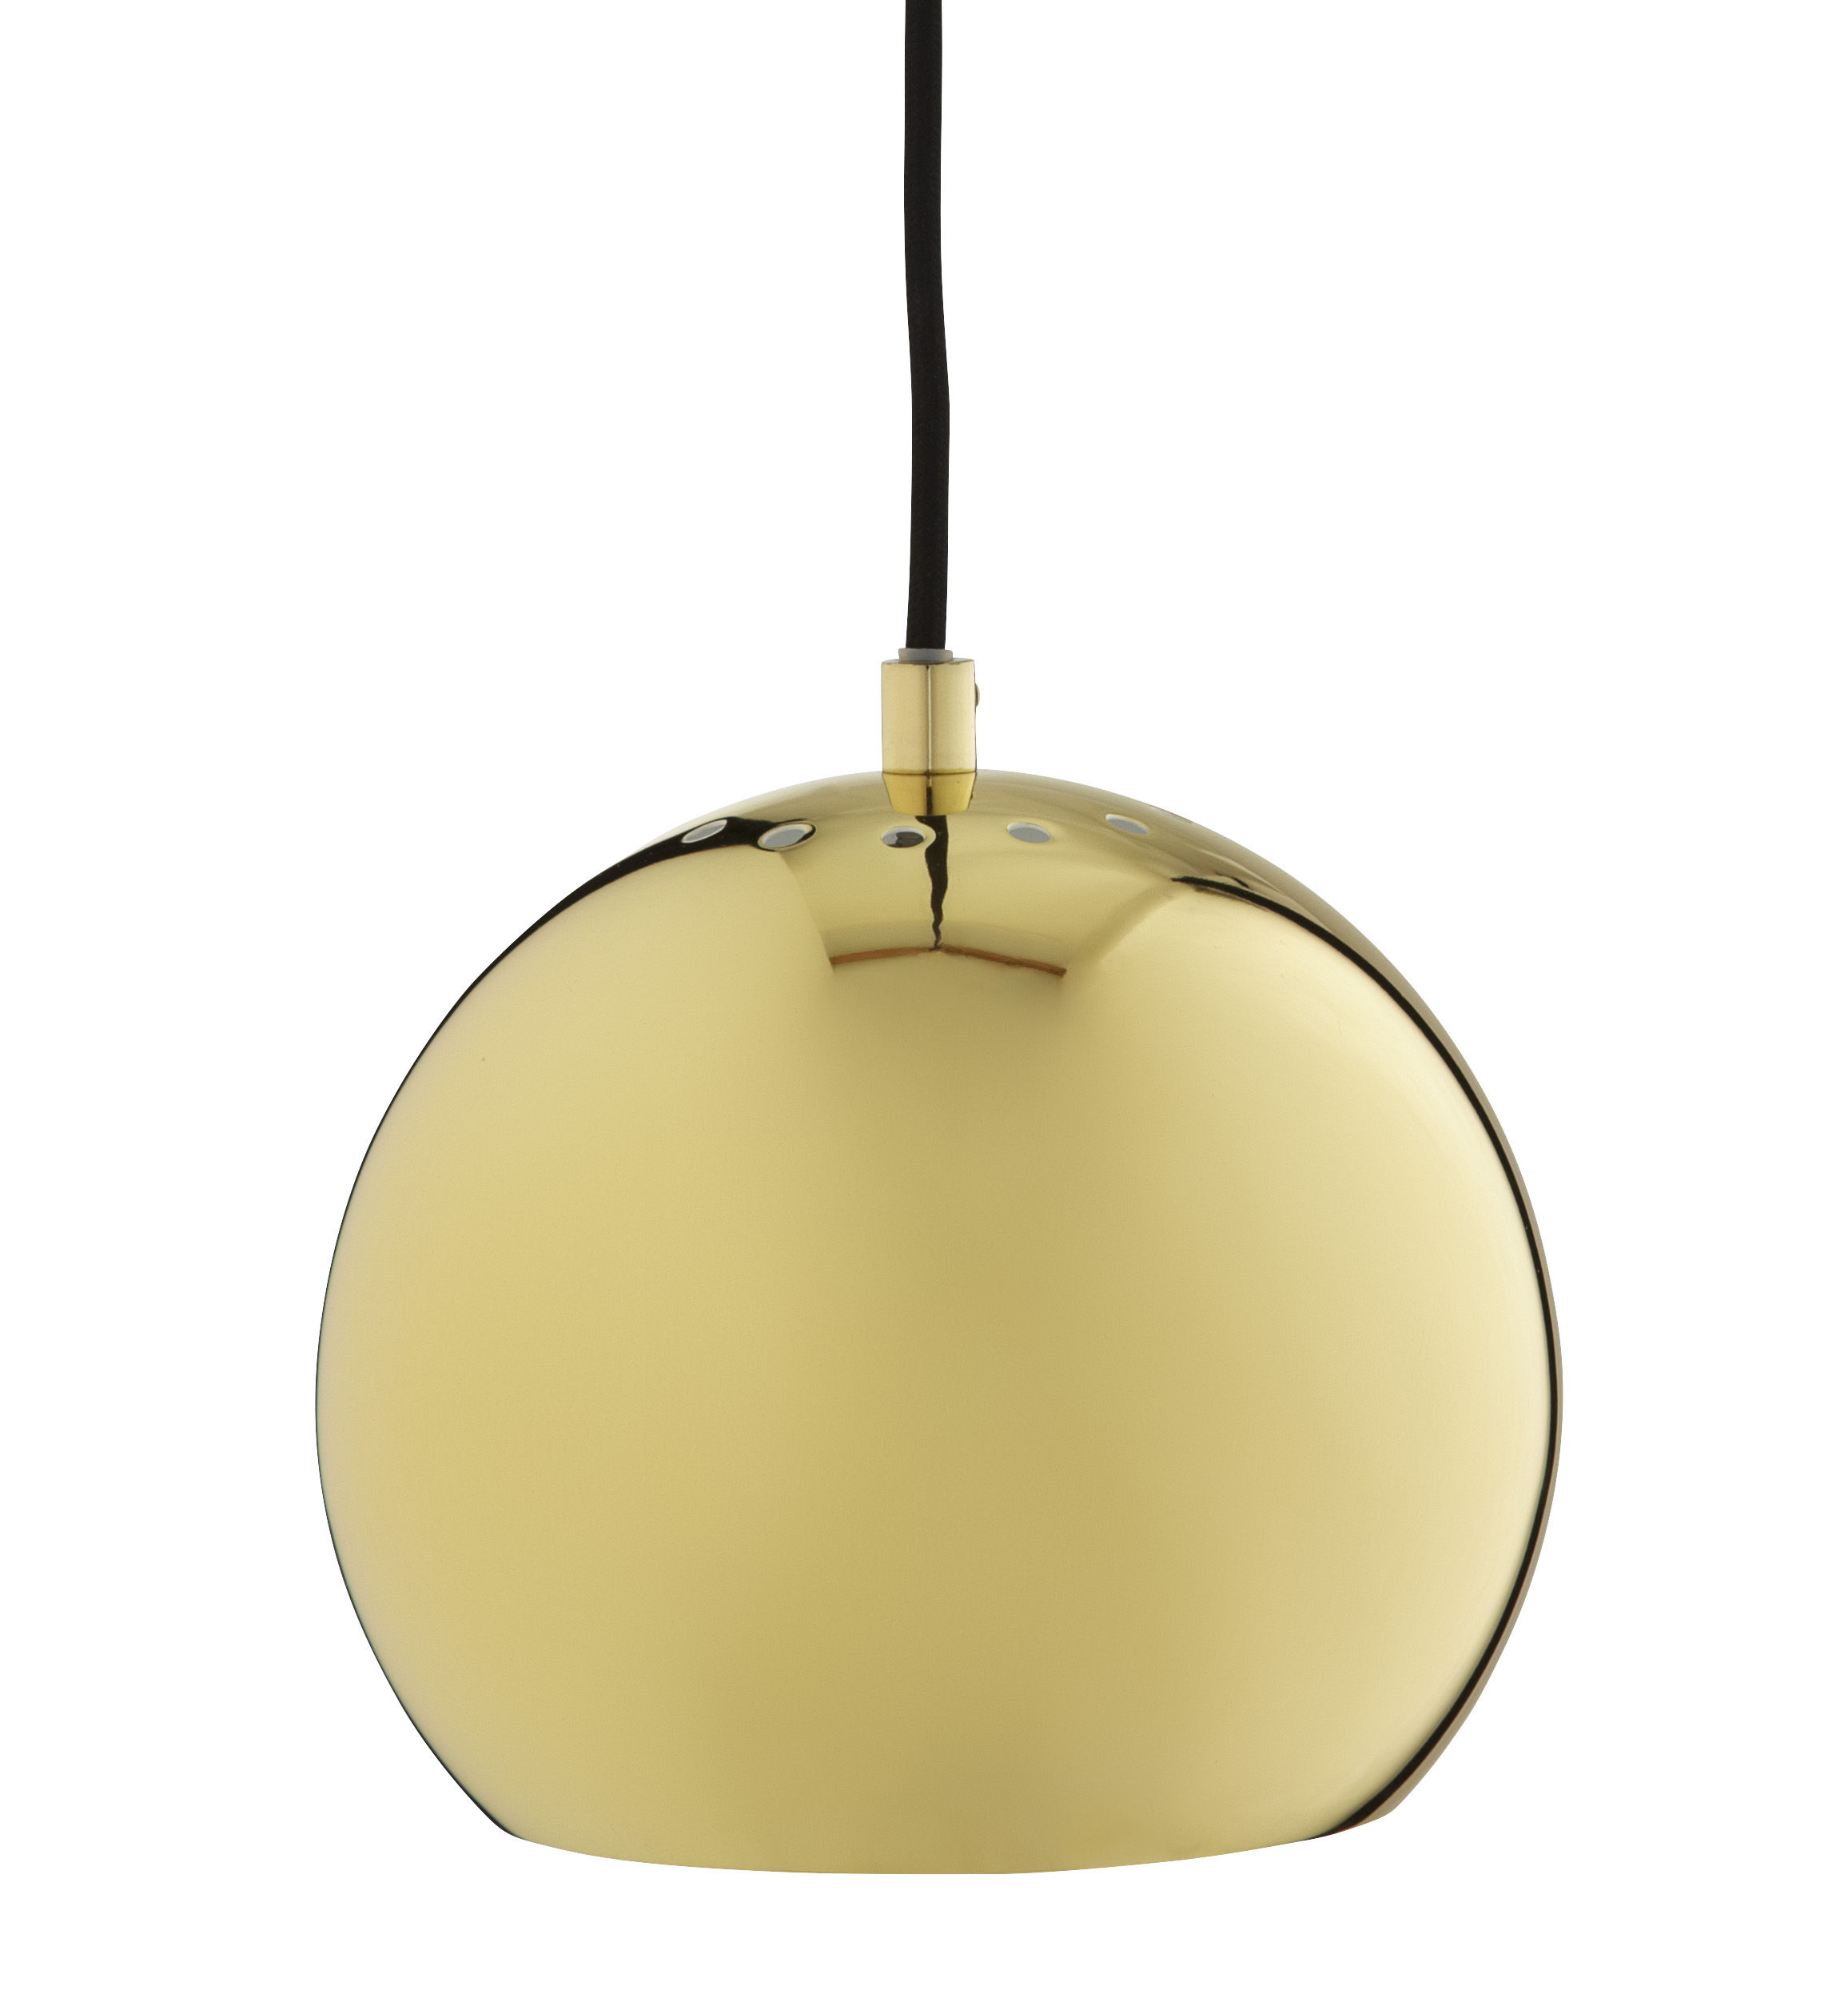 Luminaire - Suspensions - Suspension Ball Small / Ø 18 cm - Réédition 1968 - Frandsen - Laiton - Métal finition laiton